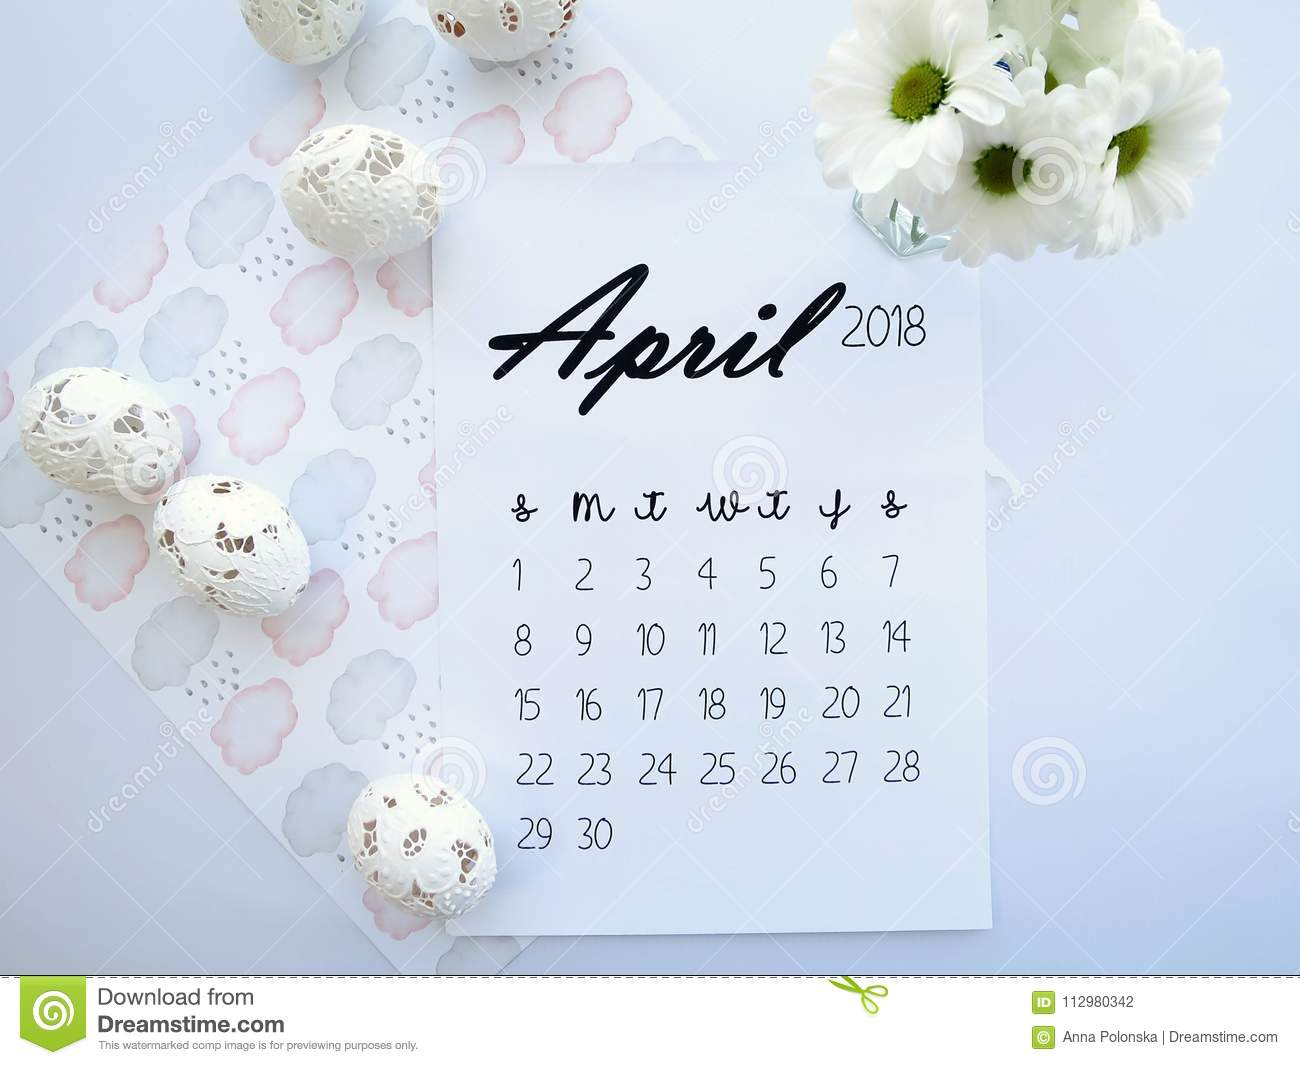 april 2018 calendar easter eggs and white flowers